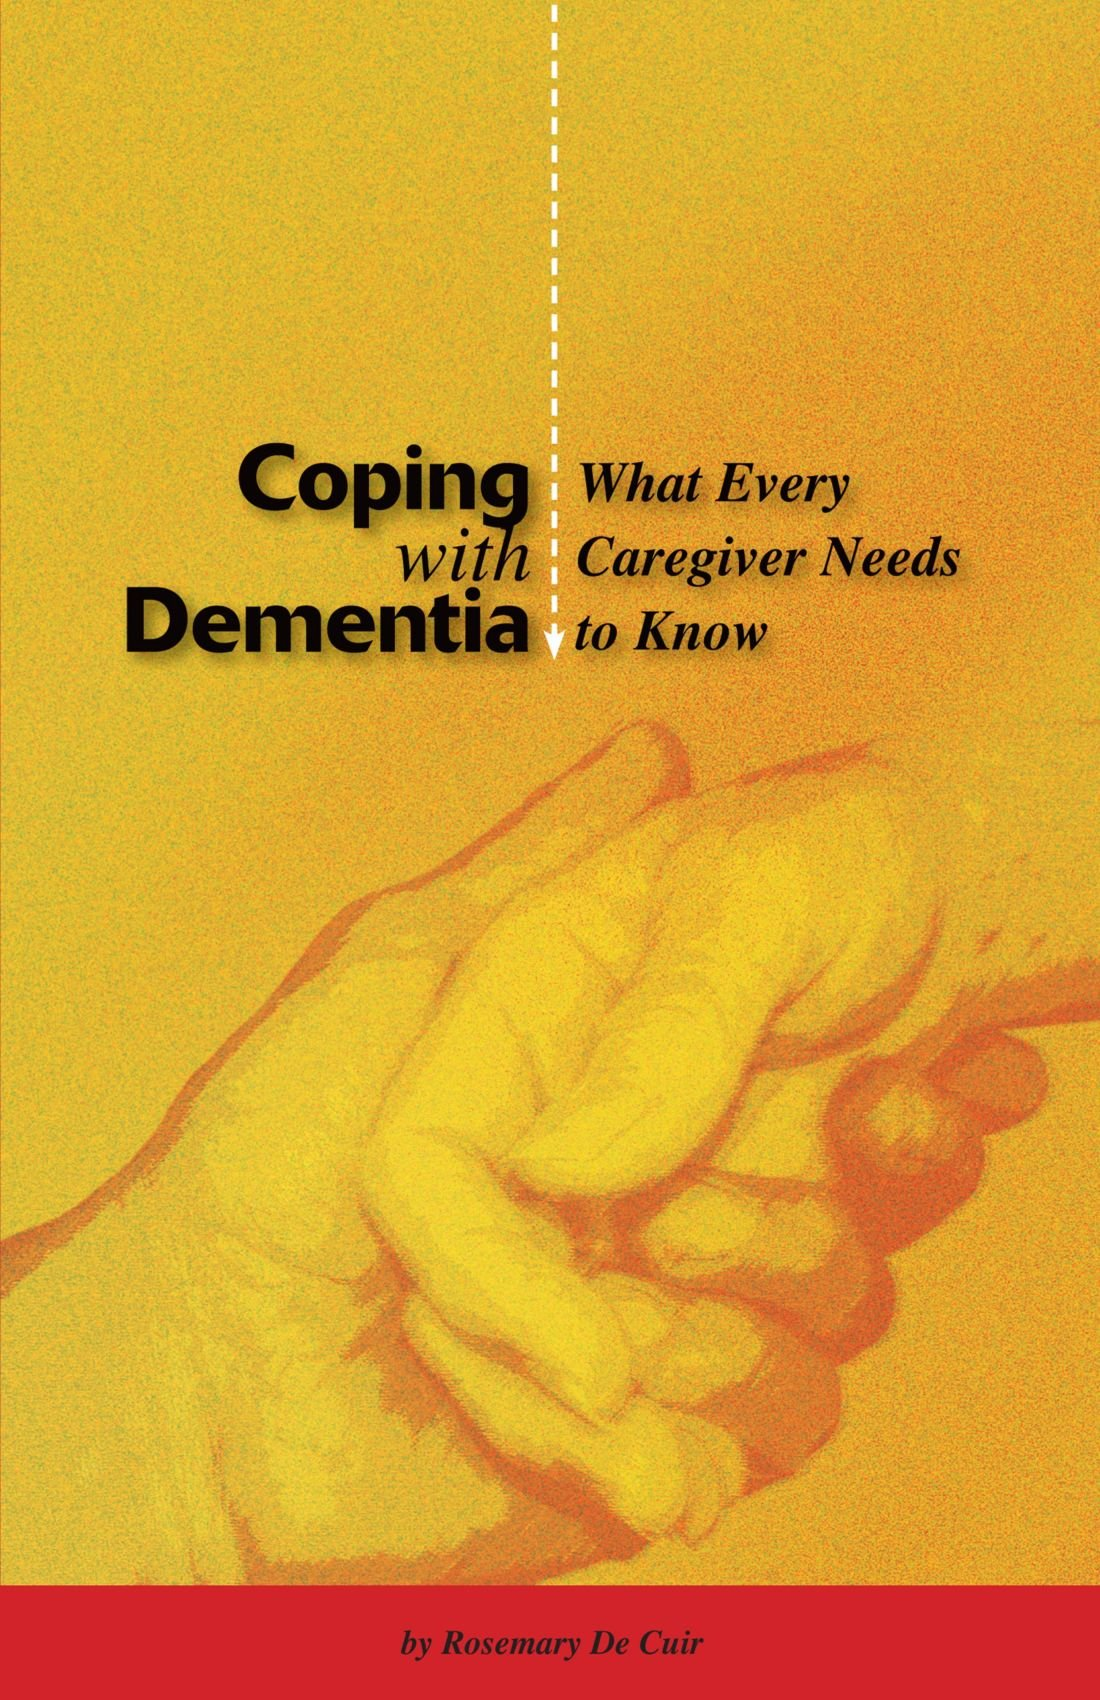 Coping With Dementia: What Every Caregiver Needs To Know pdf